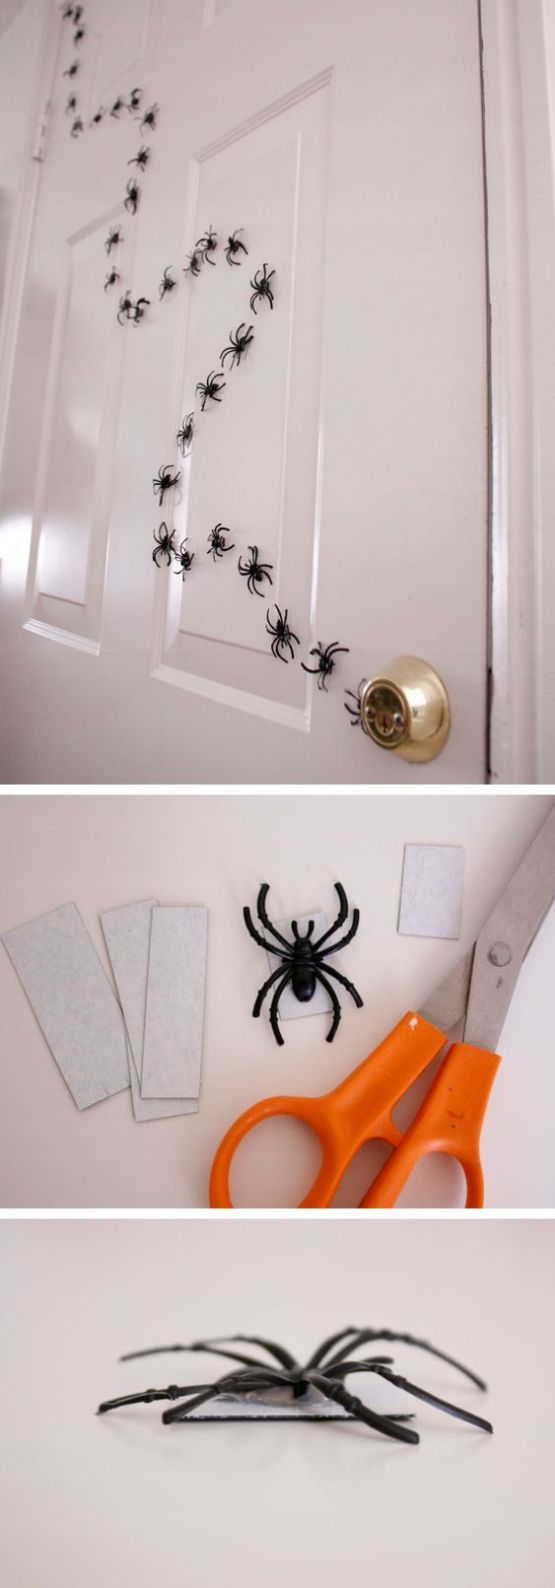 The best do it yourself halloween decorations spooktacular easy and cheap magnetic halloween spiders decorations delia creates spooktacular halloween diys crafts solutioingenieria Gallery